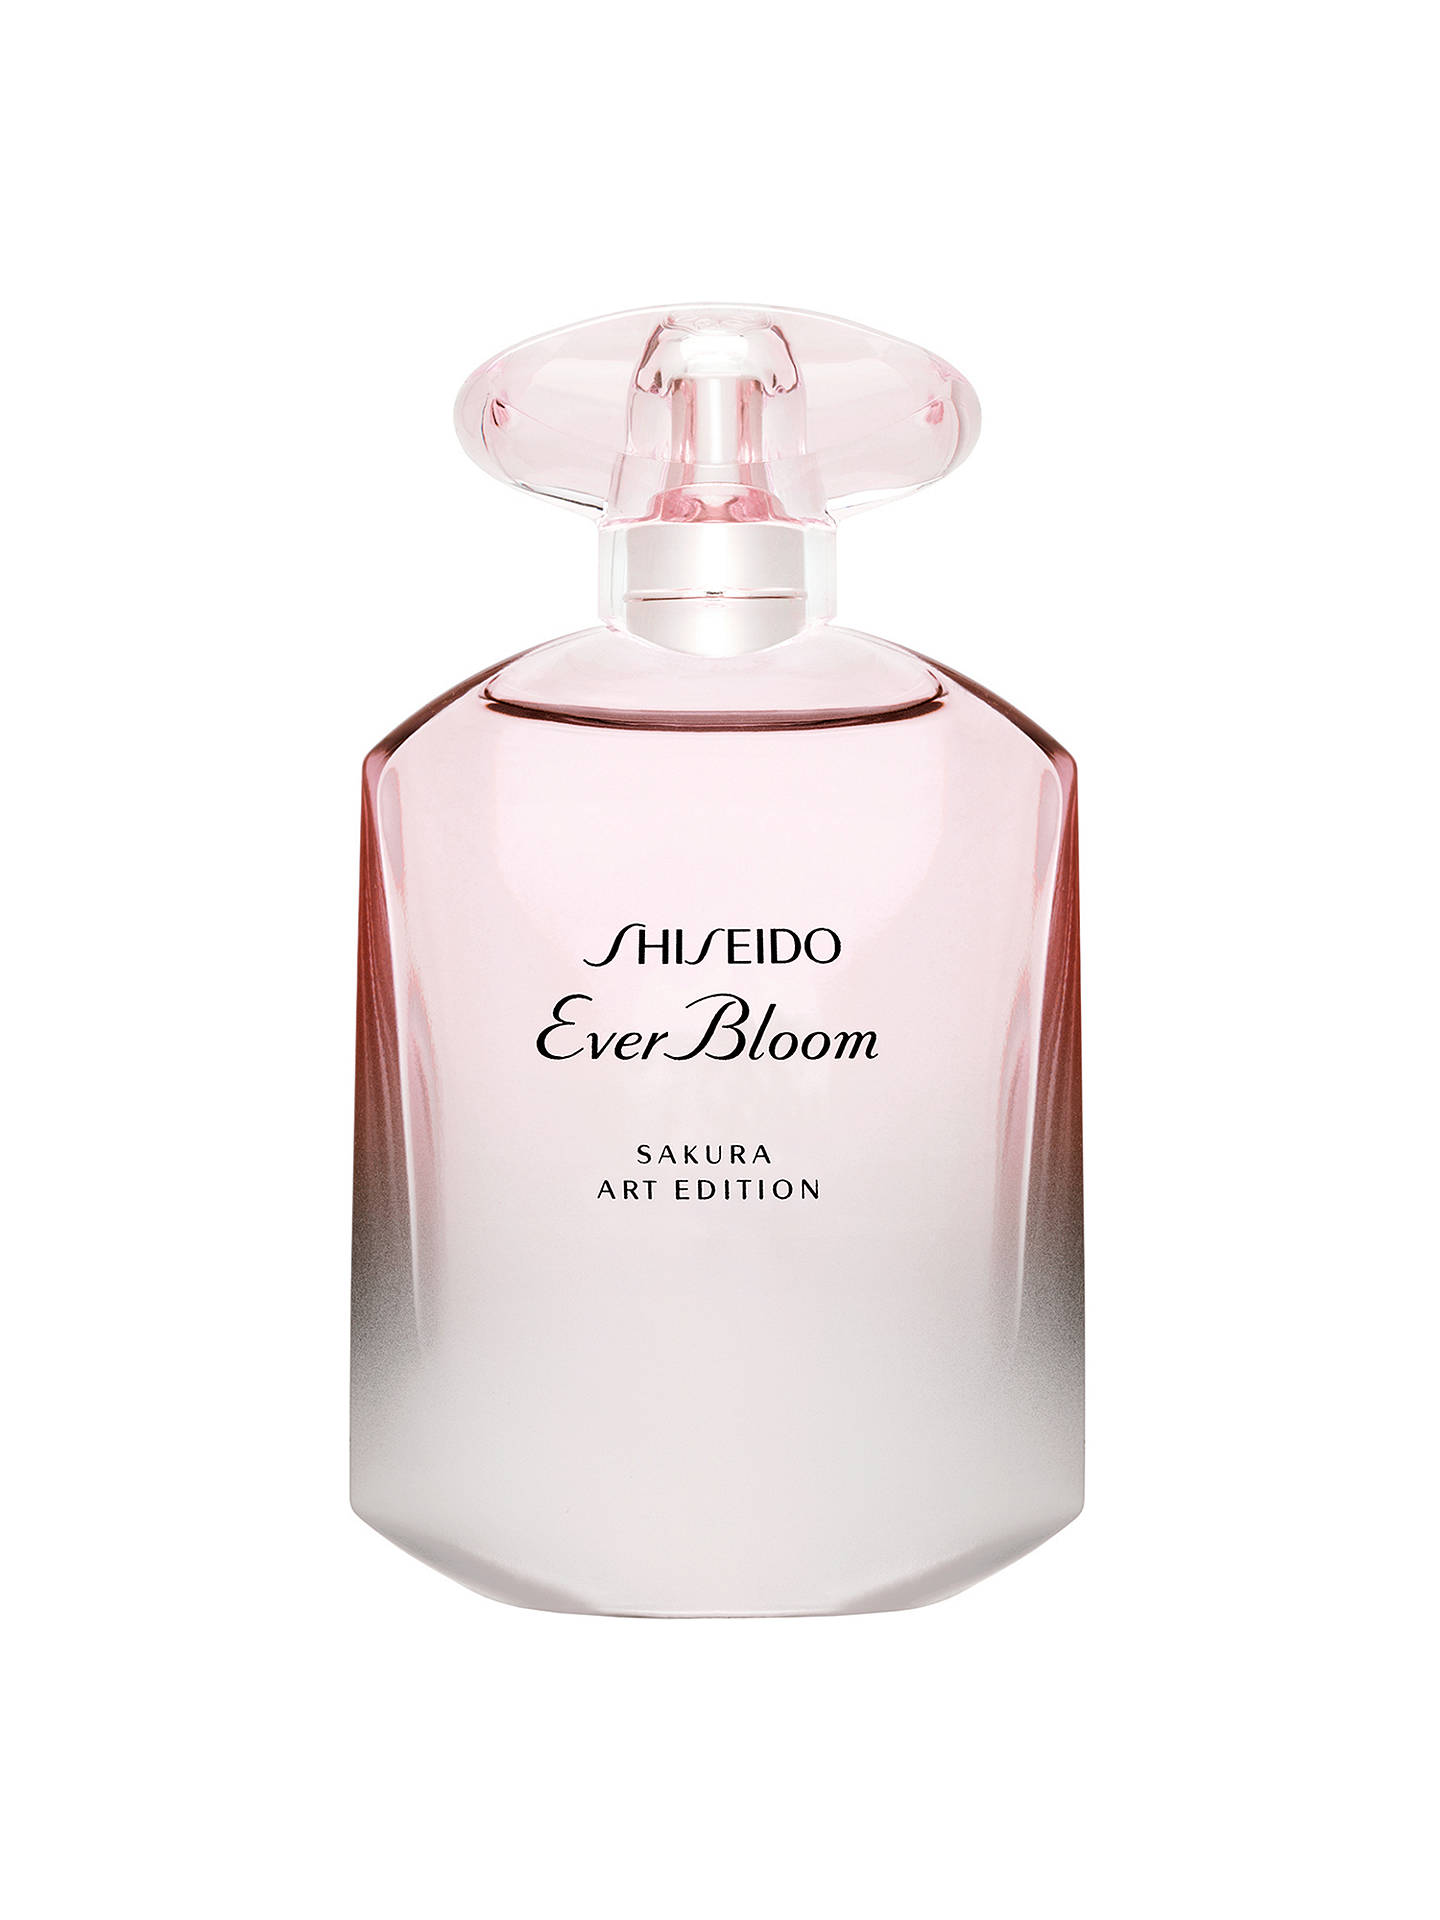 Buy Shiseido Ever Bloom Sakura Art Edition Eau de Parfum, 30ml Online at johnlewis.com